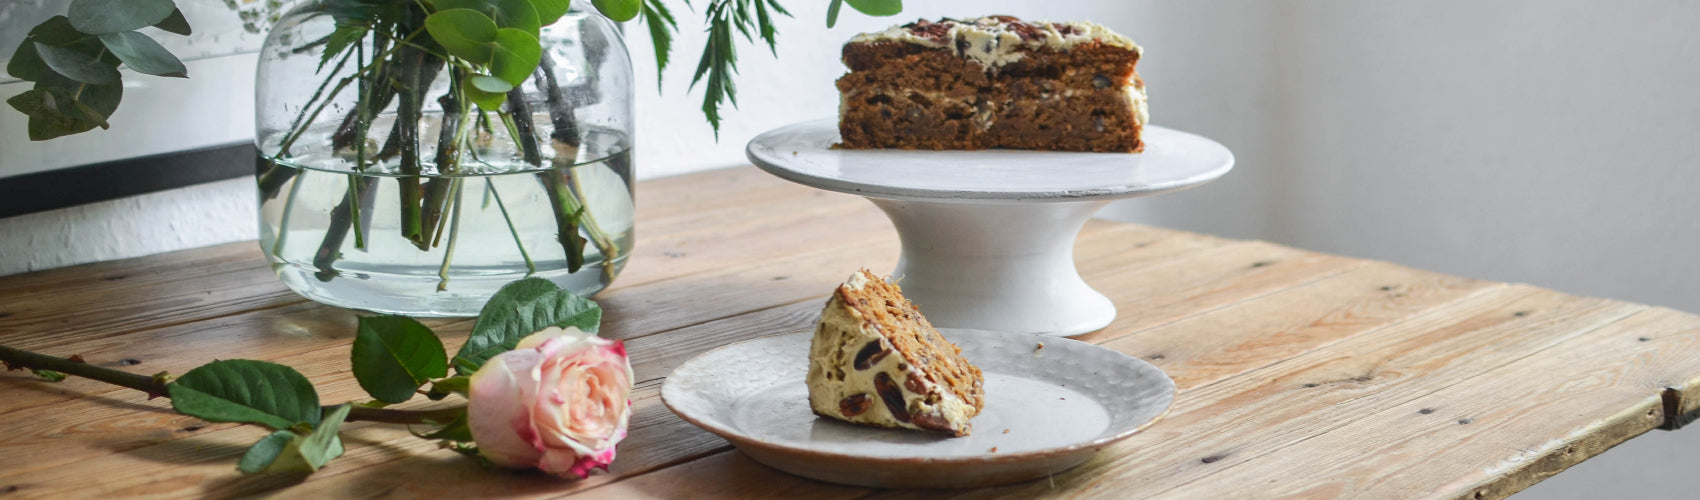 Hummingbird Cake Recipe Header